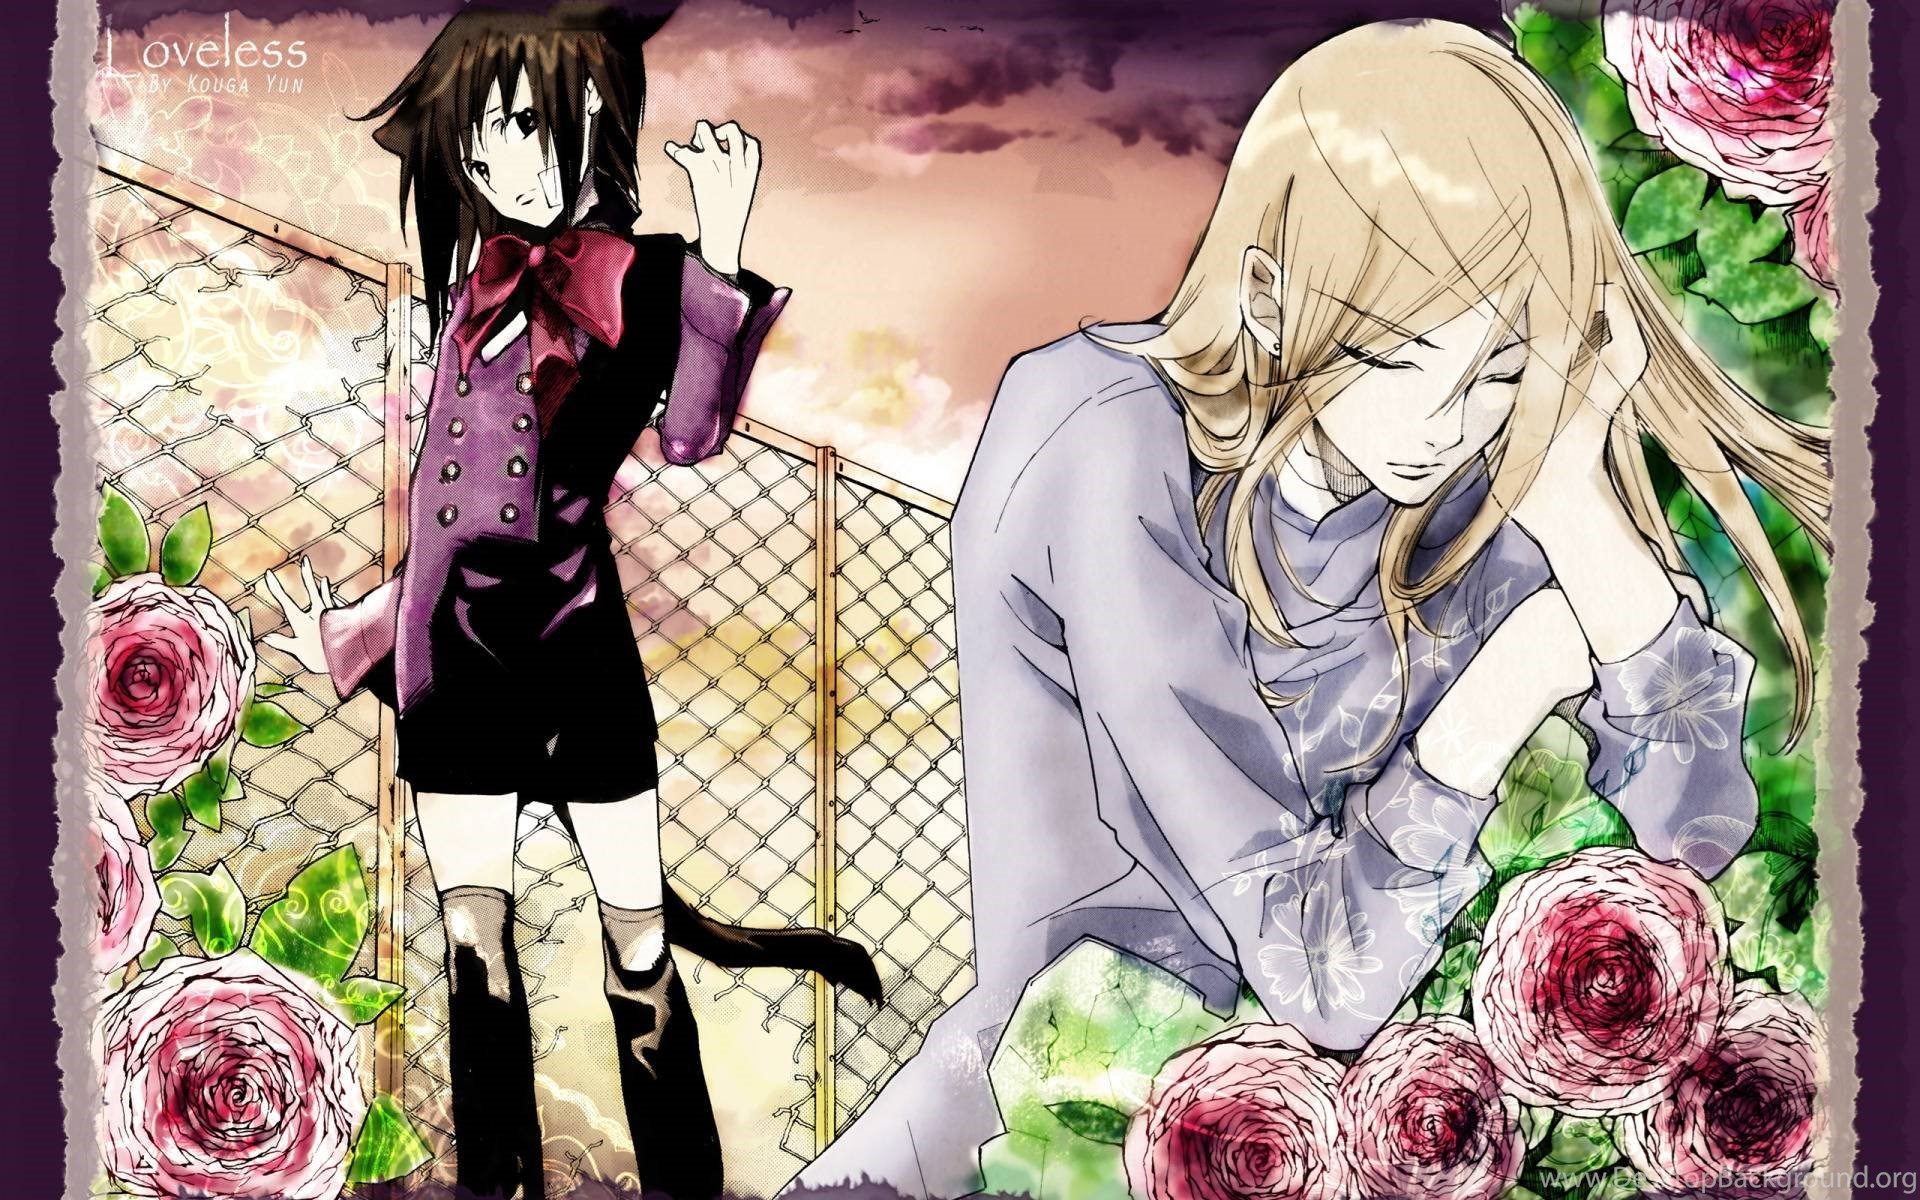 Anime Loveless Wallpapers Desktop Background Images, Photos, Reviews